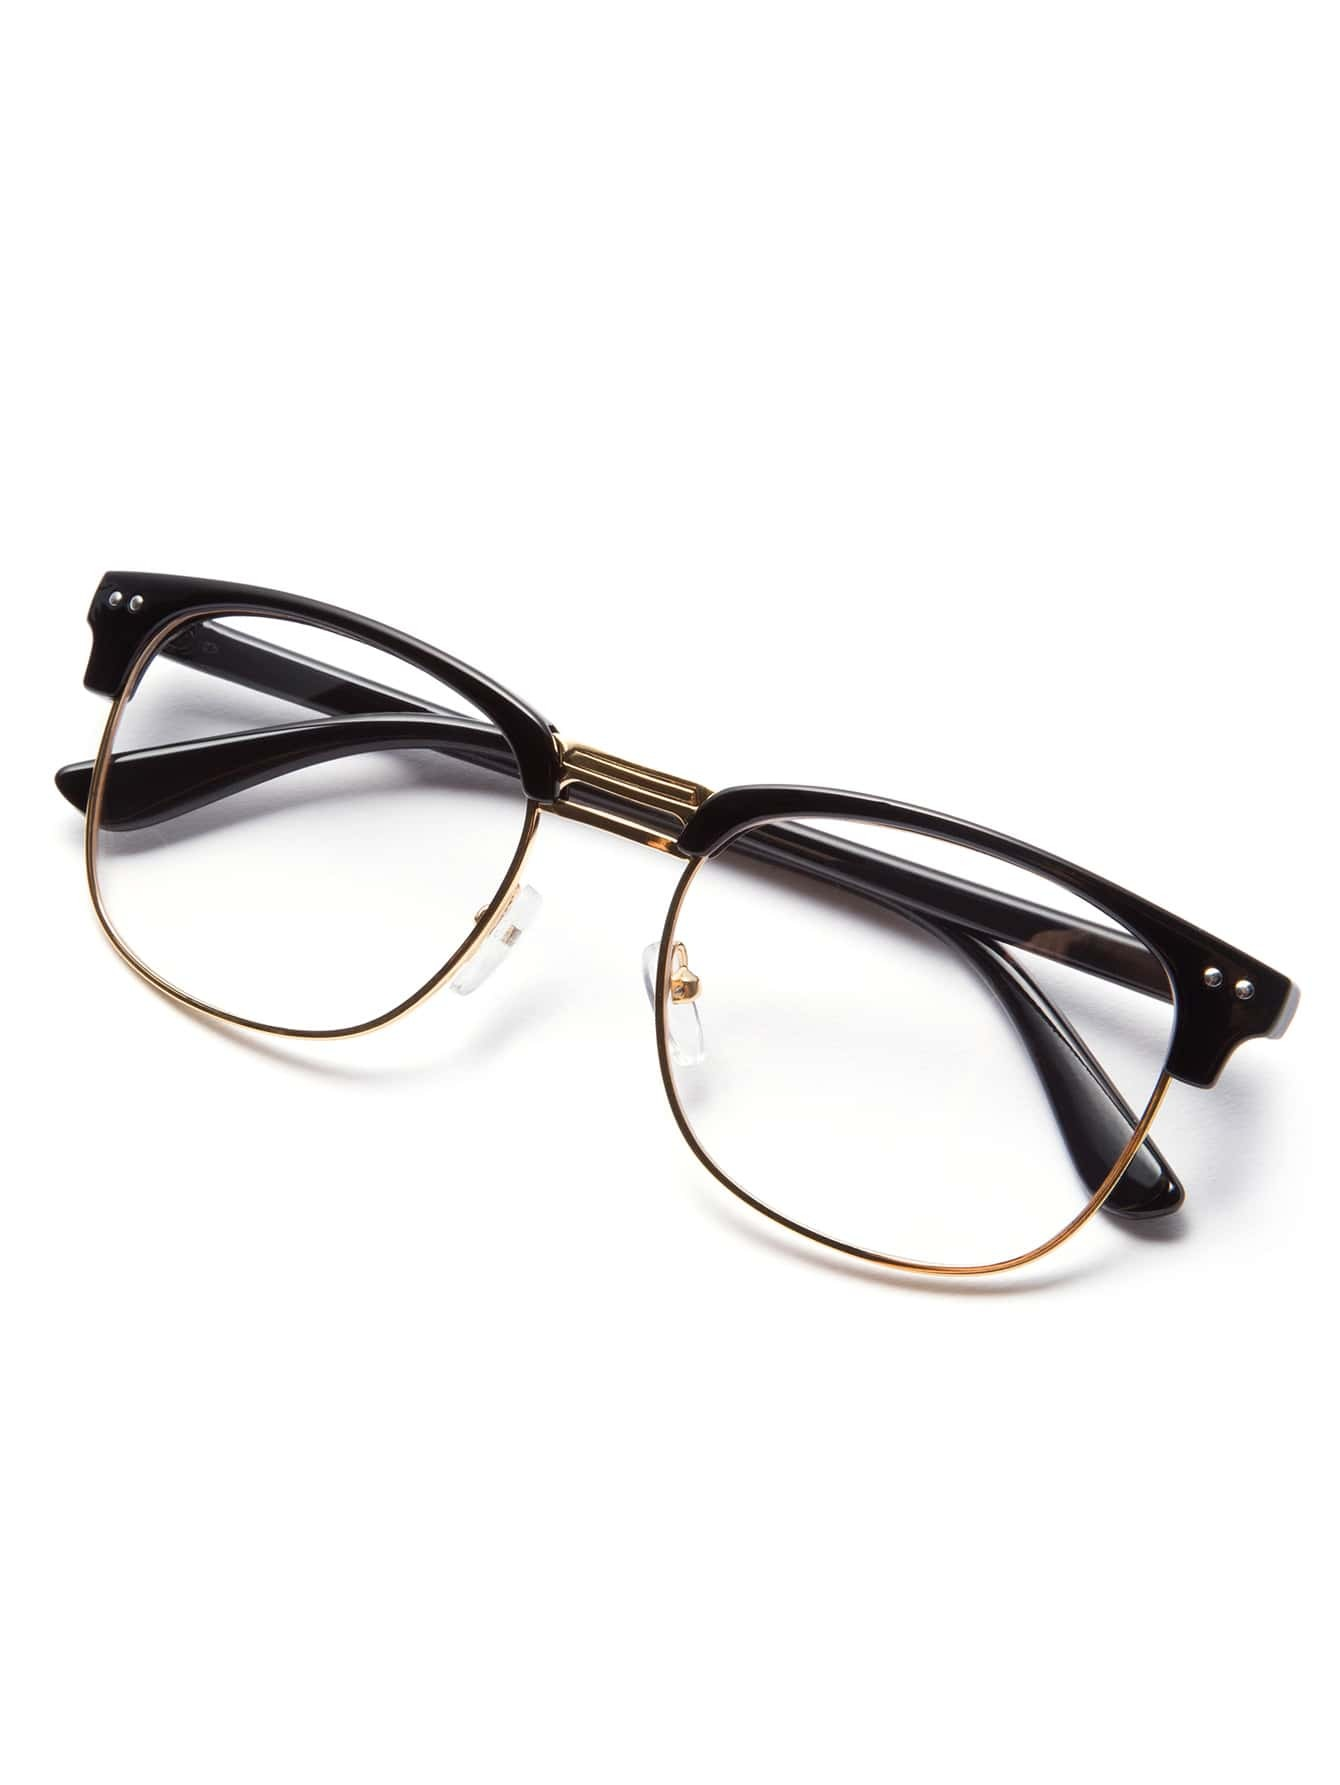 Gold Frame Glasses Tumblr : Black Open Frame Gold Trim Glasses -SheIn(Sheinside)